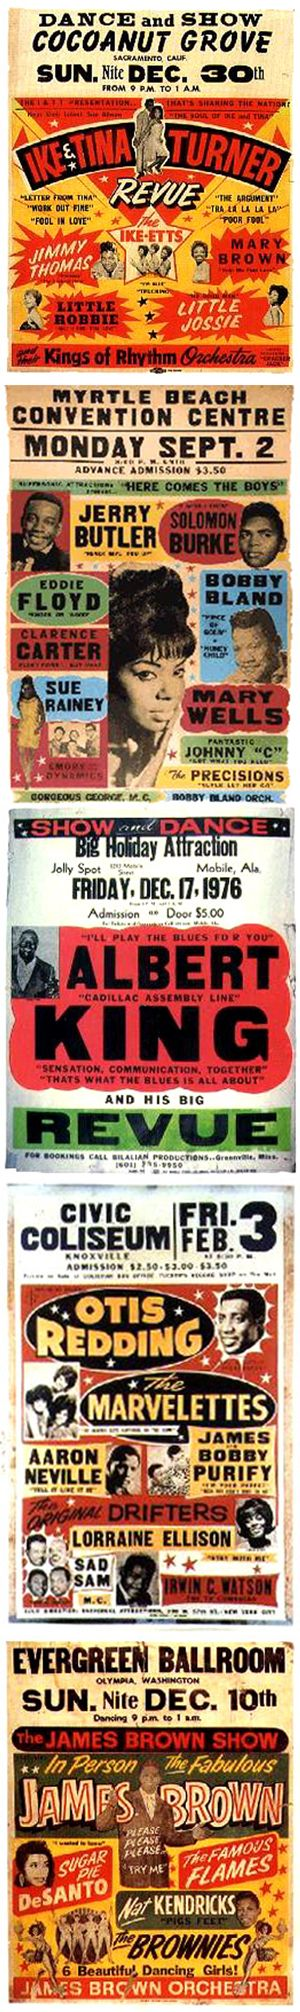 Classic 1960s Soul Concert Posters